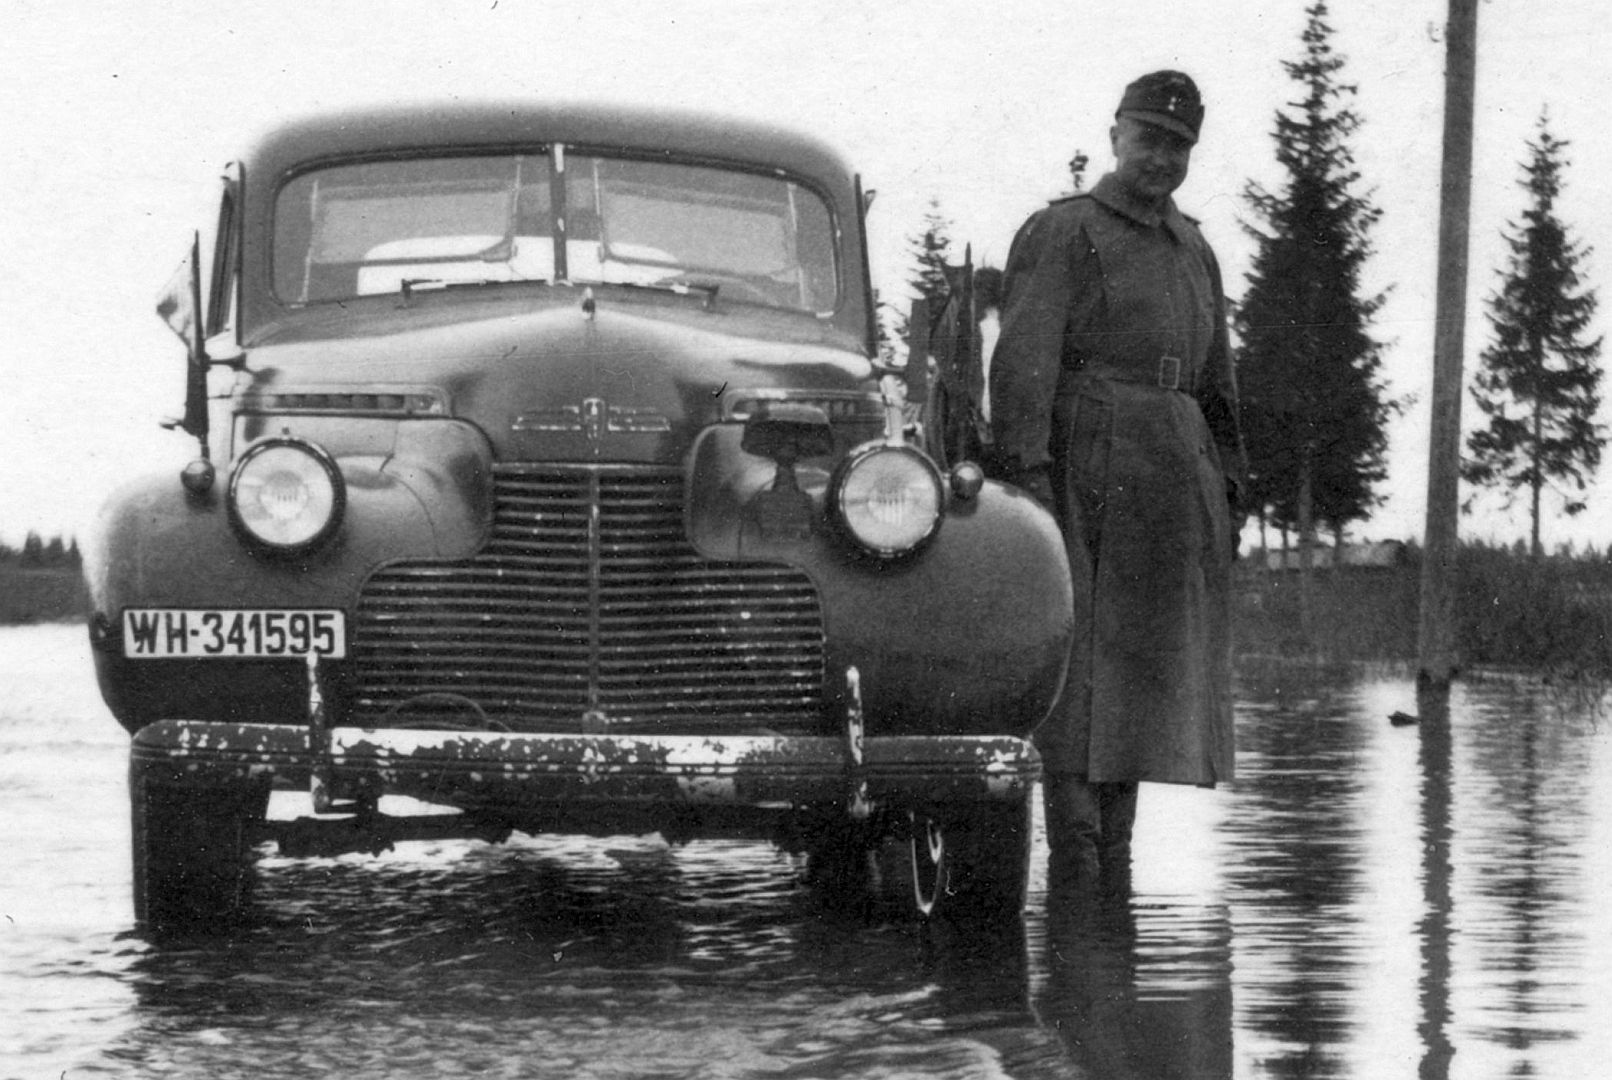 Chevrolet_1940_WH_Galerie